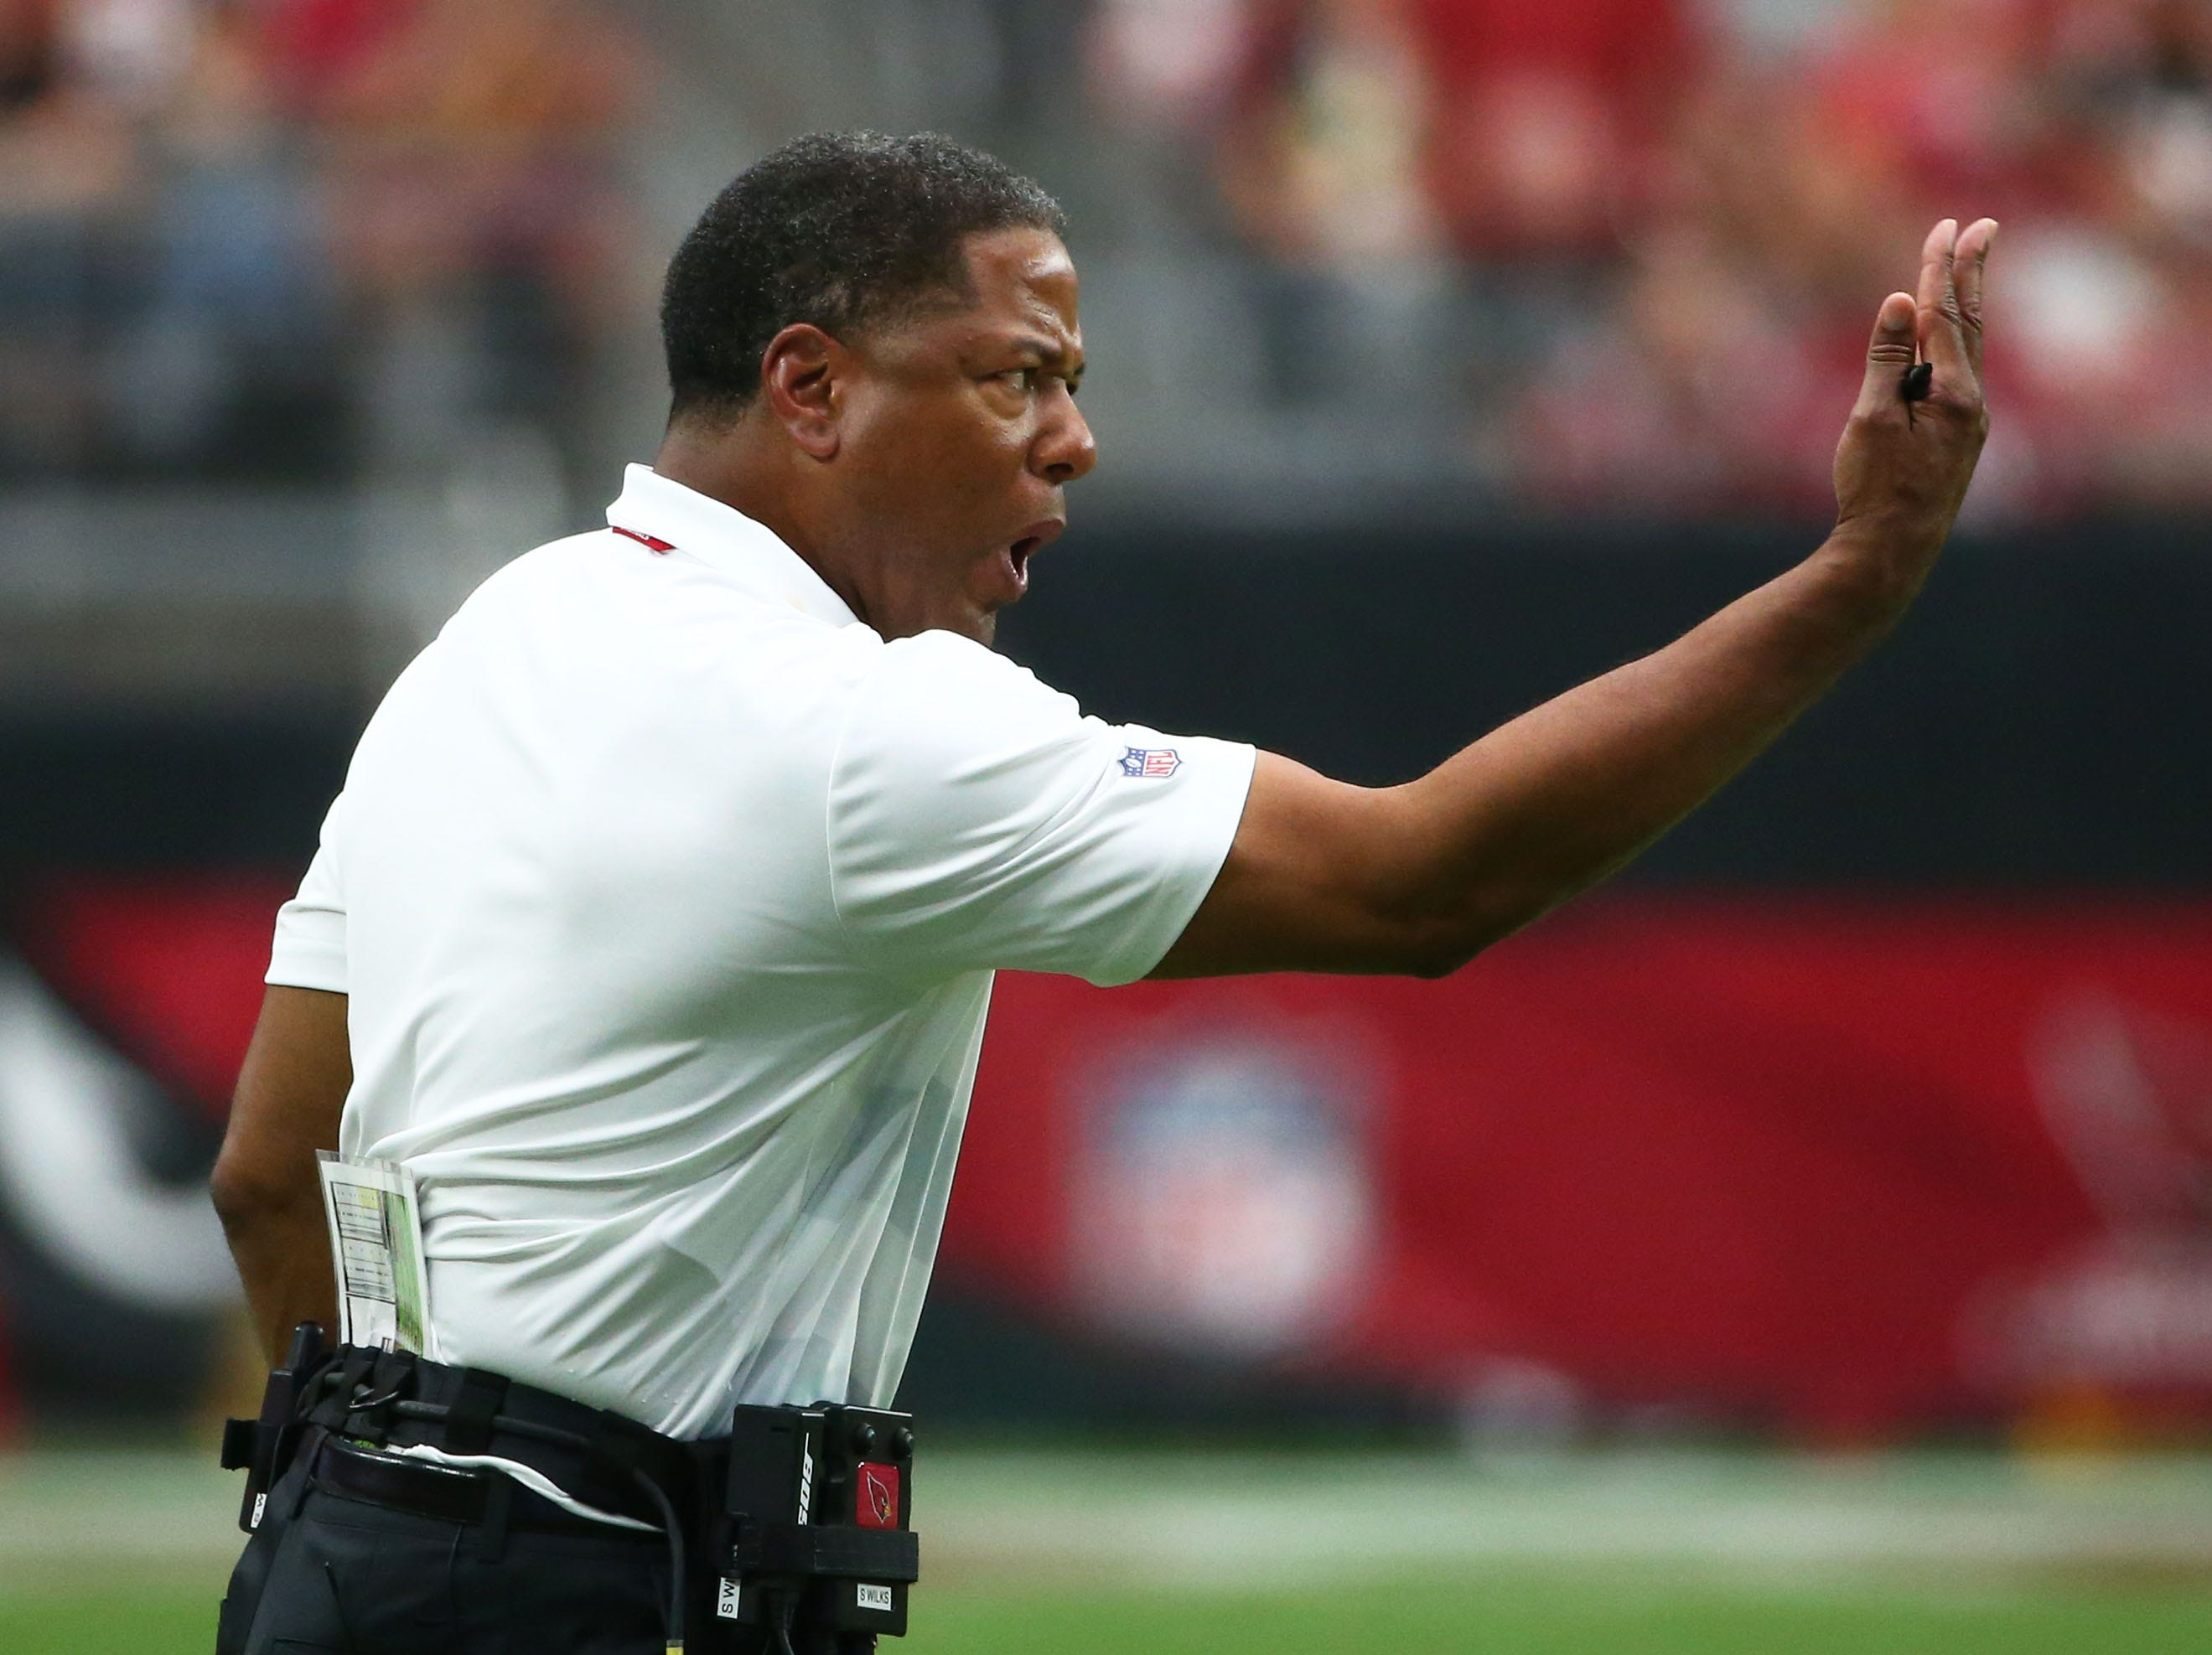 Arizona Cardinals head coach Steve Wilks reacts to a penalty against the Washington Redskins in the first half at State Farm Stadium.